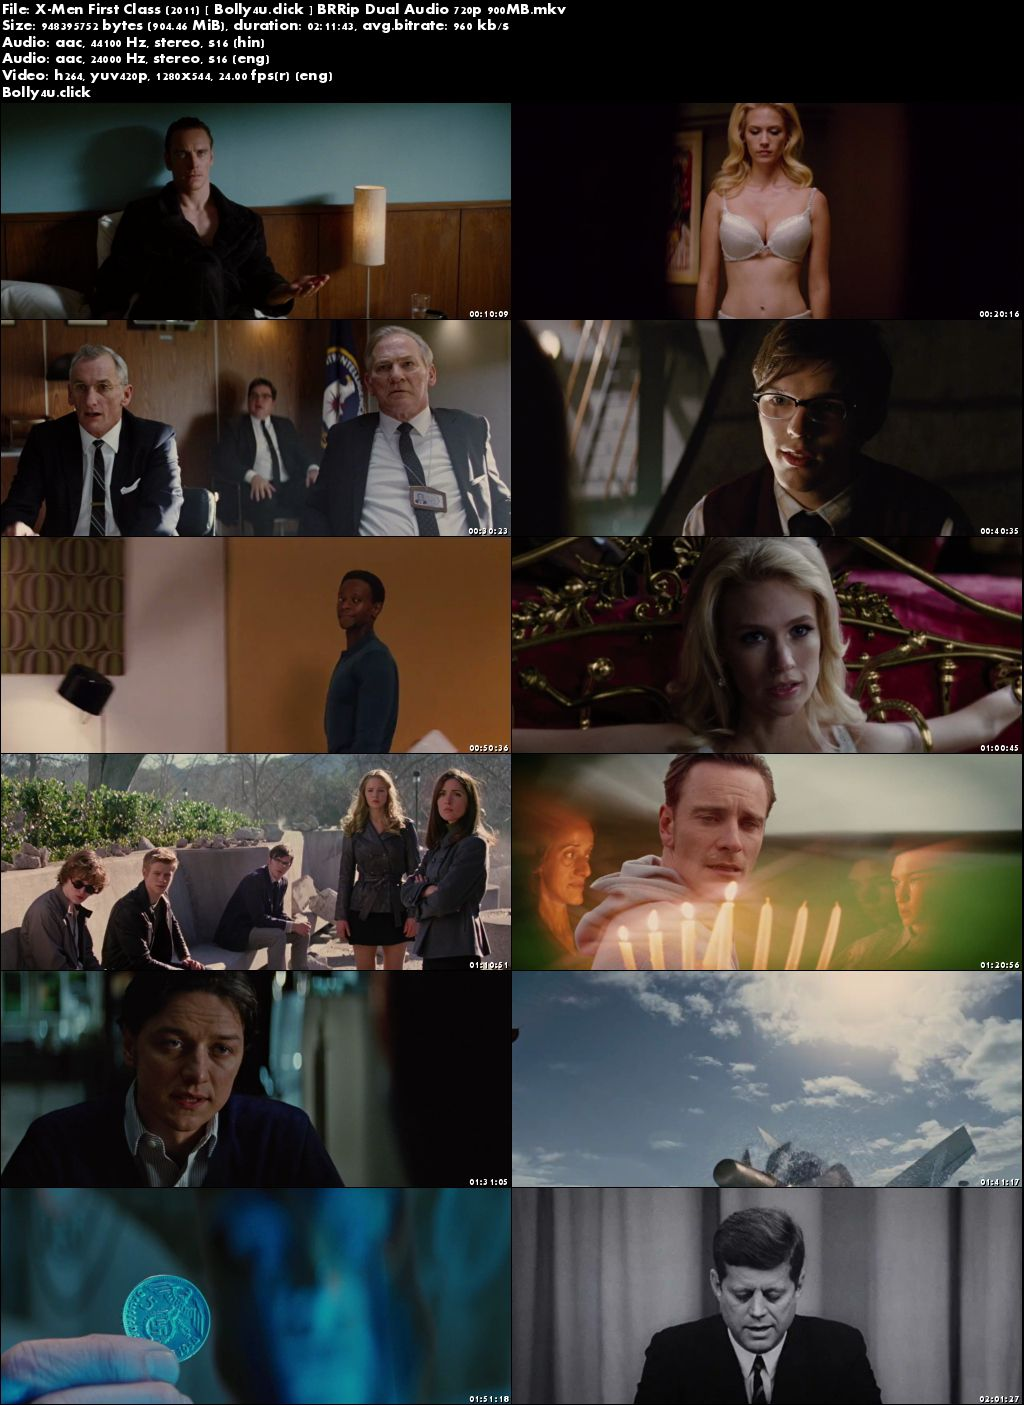 X-Men First Class 2011 BRRip 900MB Hindi Dual Audio 720p Download